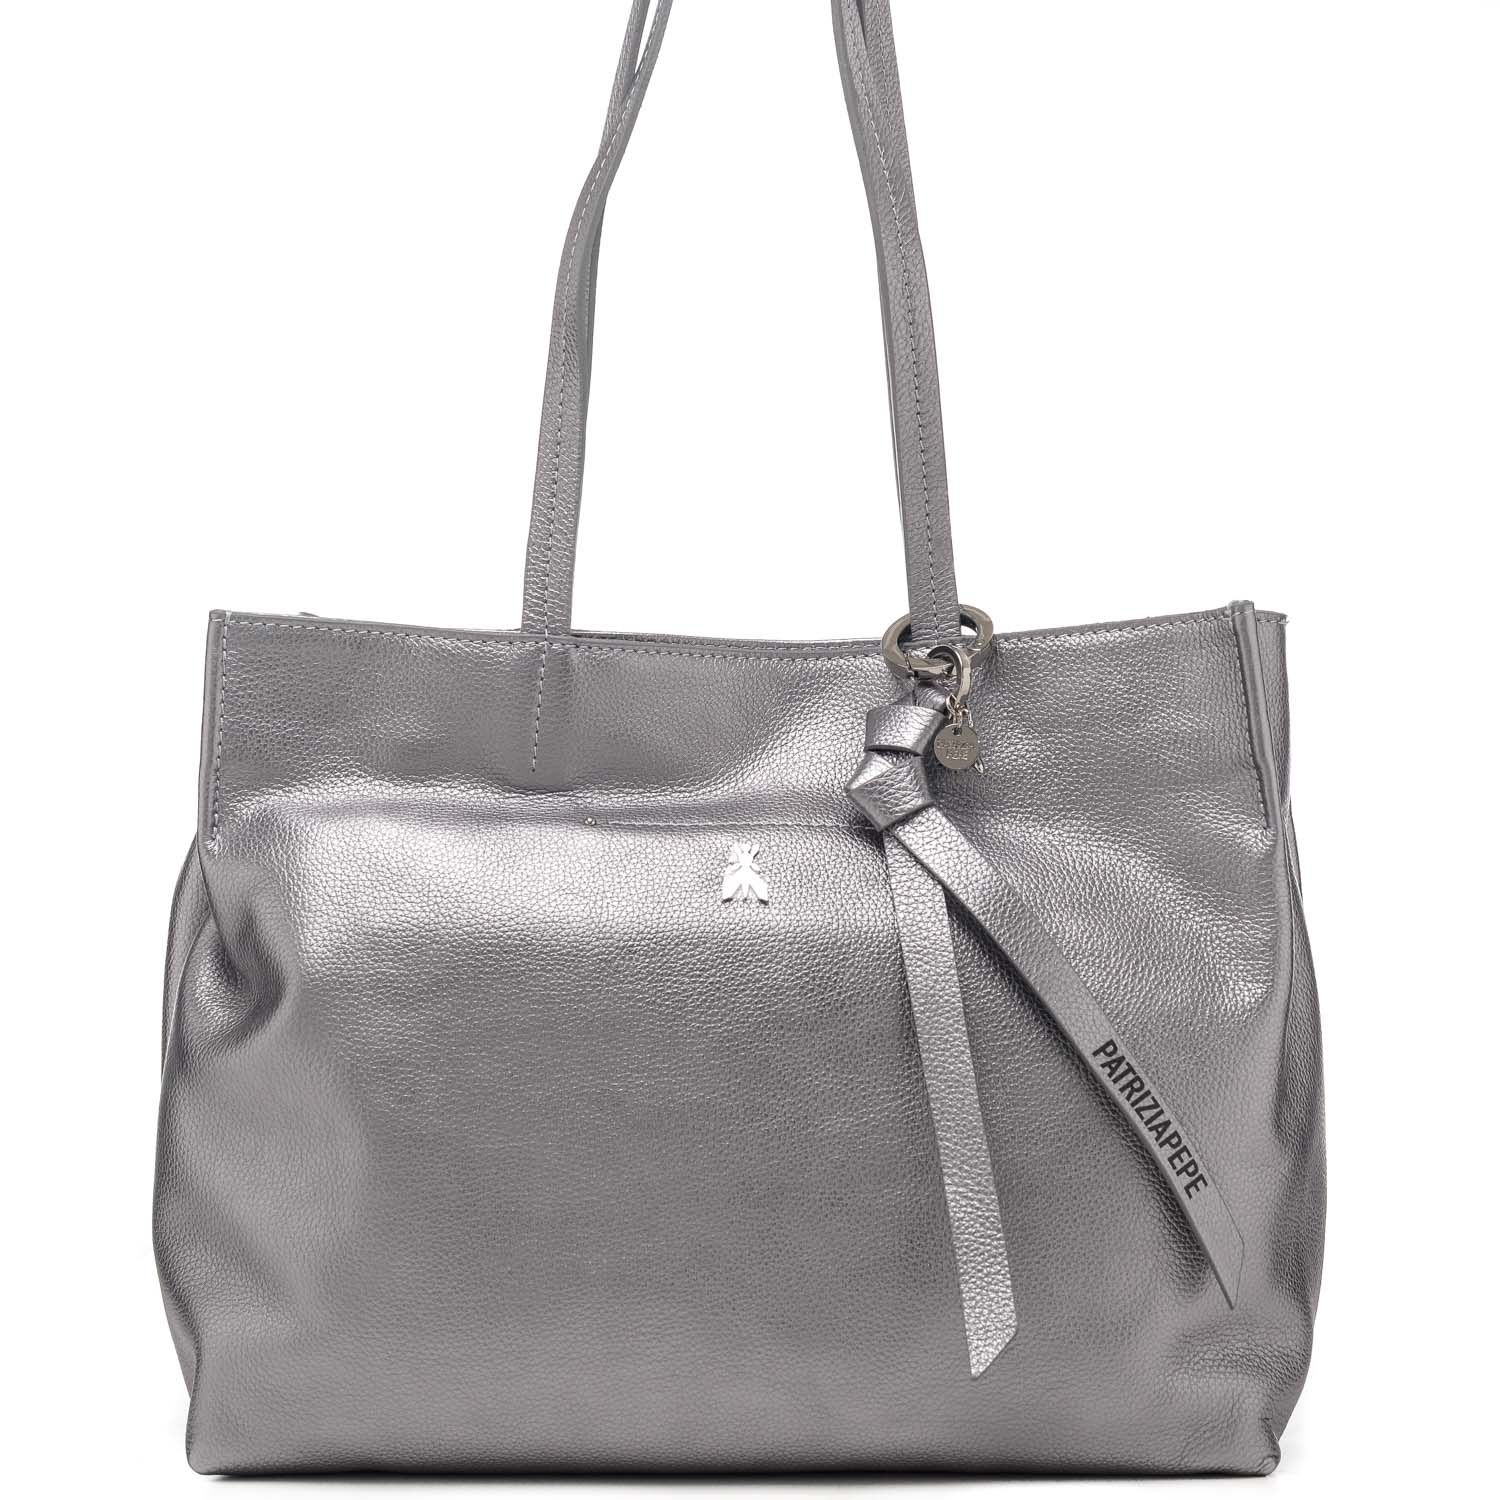 Borsa shopping in vera pelle con logo in metallo - Made in Italy